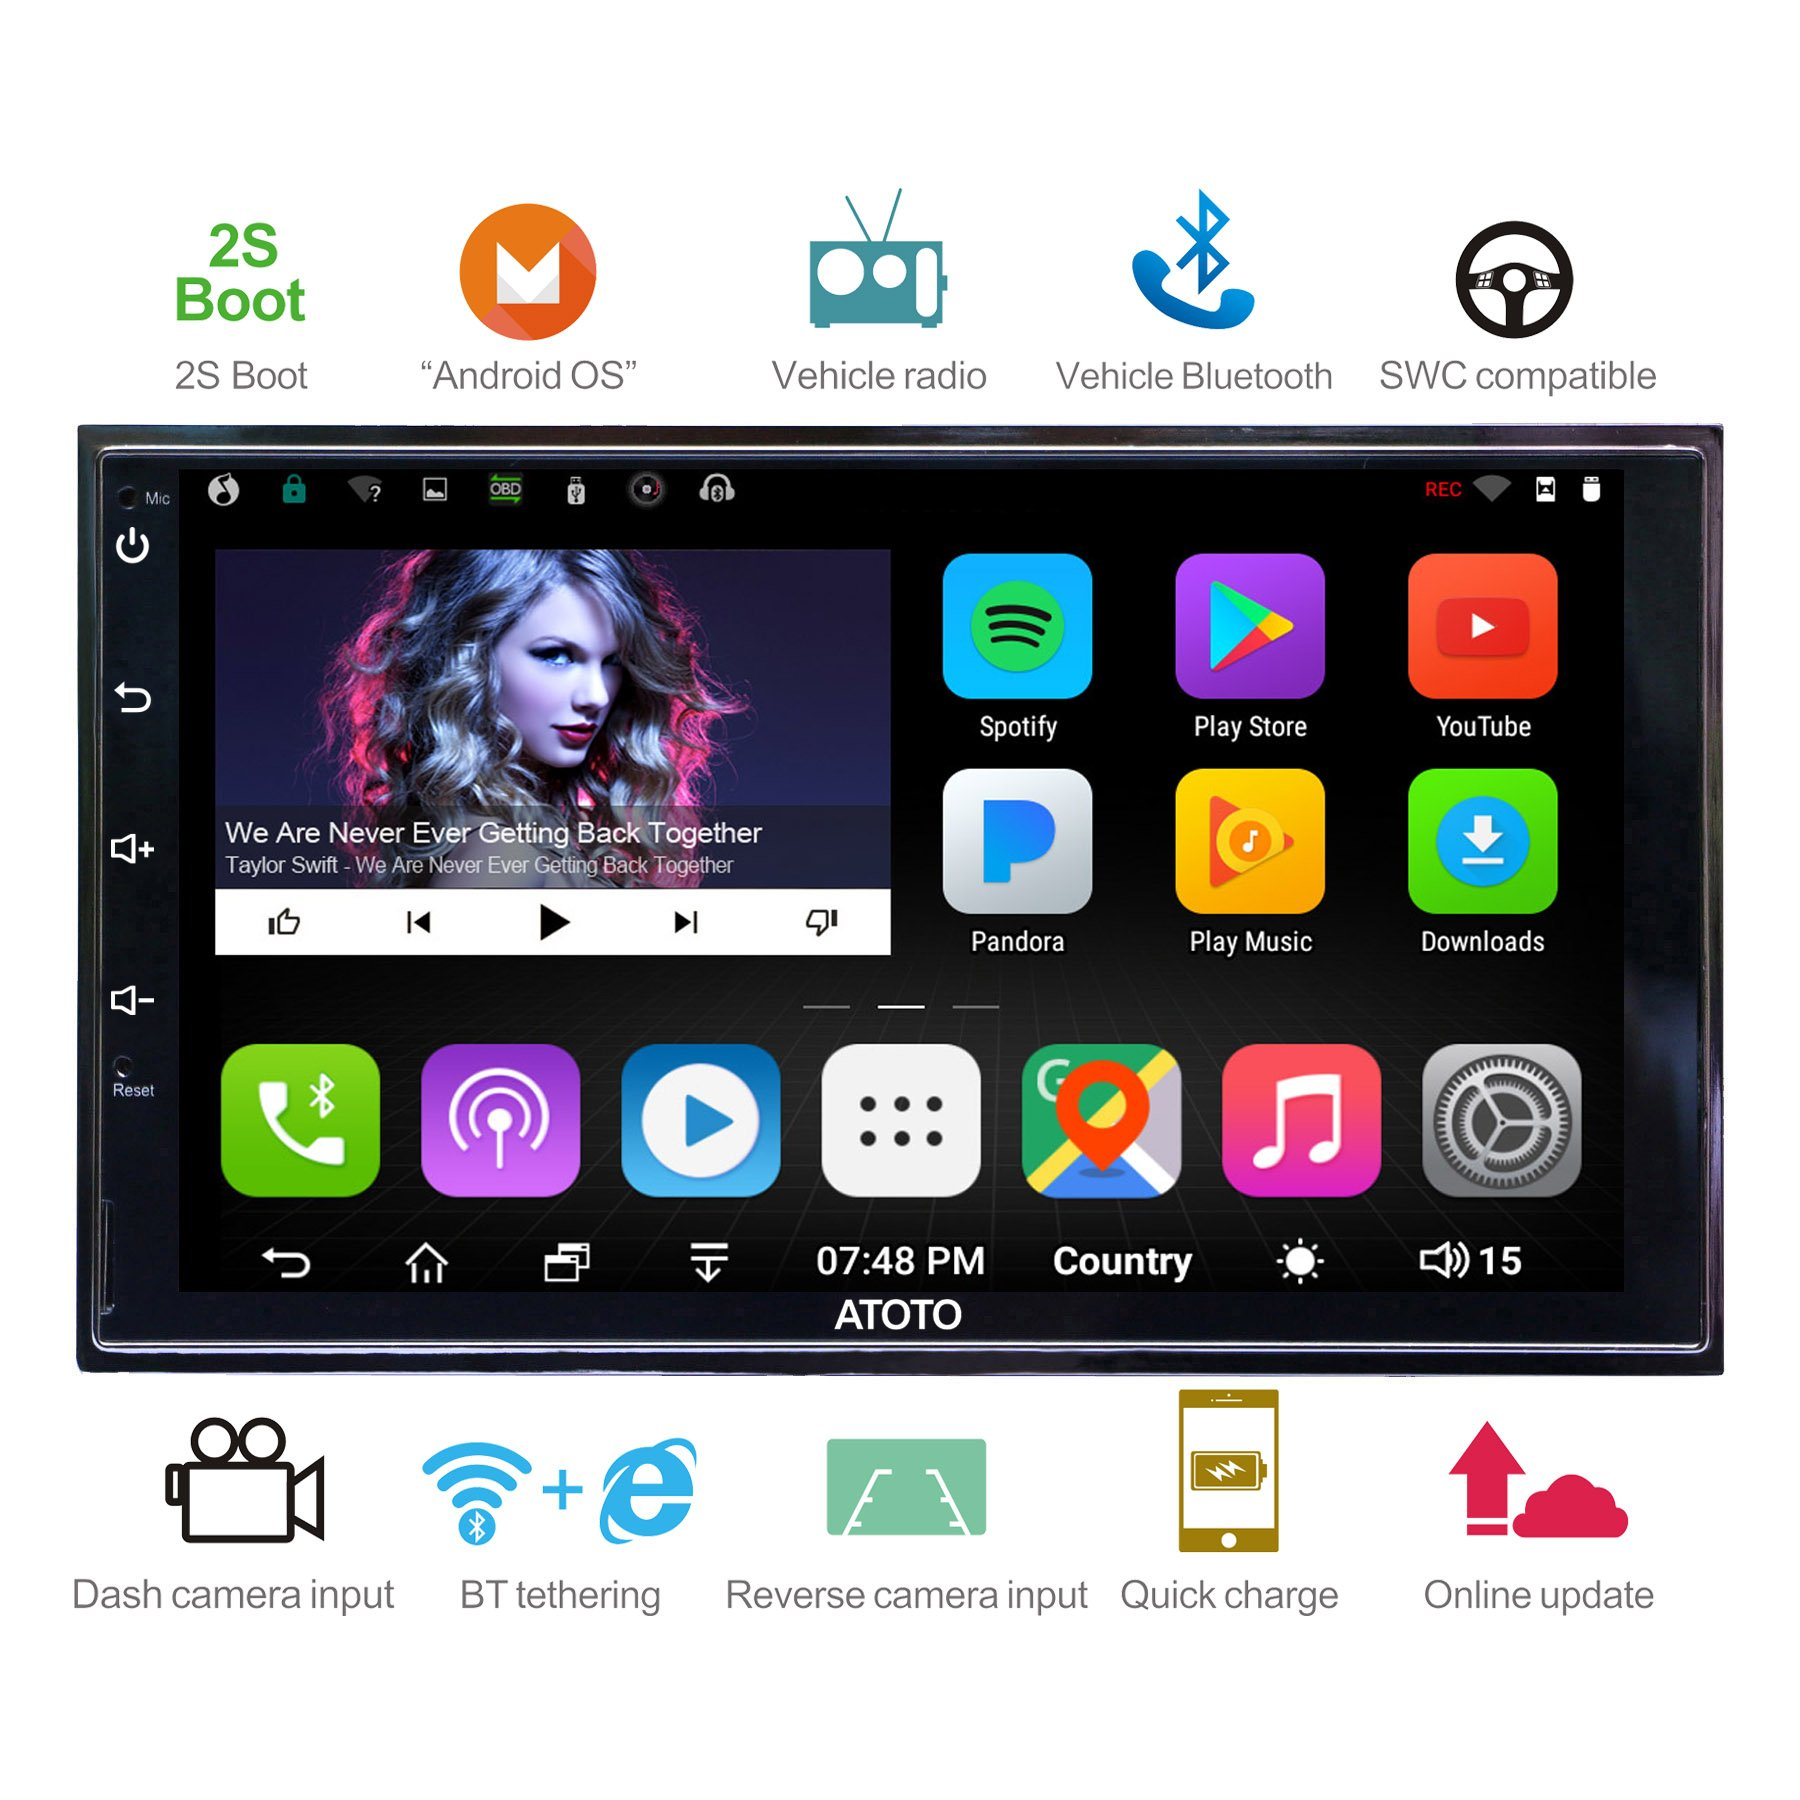 [NEW] ATOTO A6 2DIN Android Car Navigation Stereo with Dual Bluetooth & 2A Charge -Premiun A62721P 2G/32G Car Entertainment Multimedia Radio,WiFi/BT Tethering internet,support 256G SD &more by ATOTO